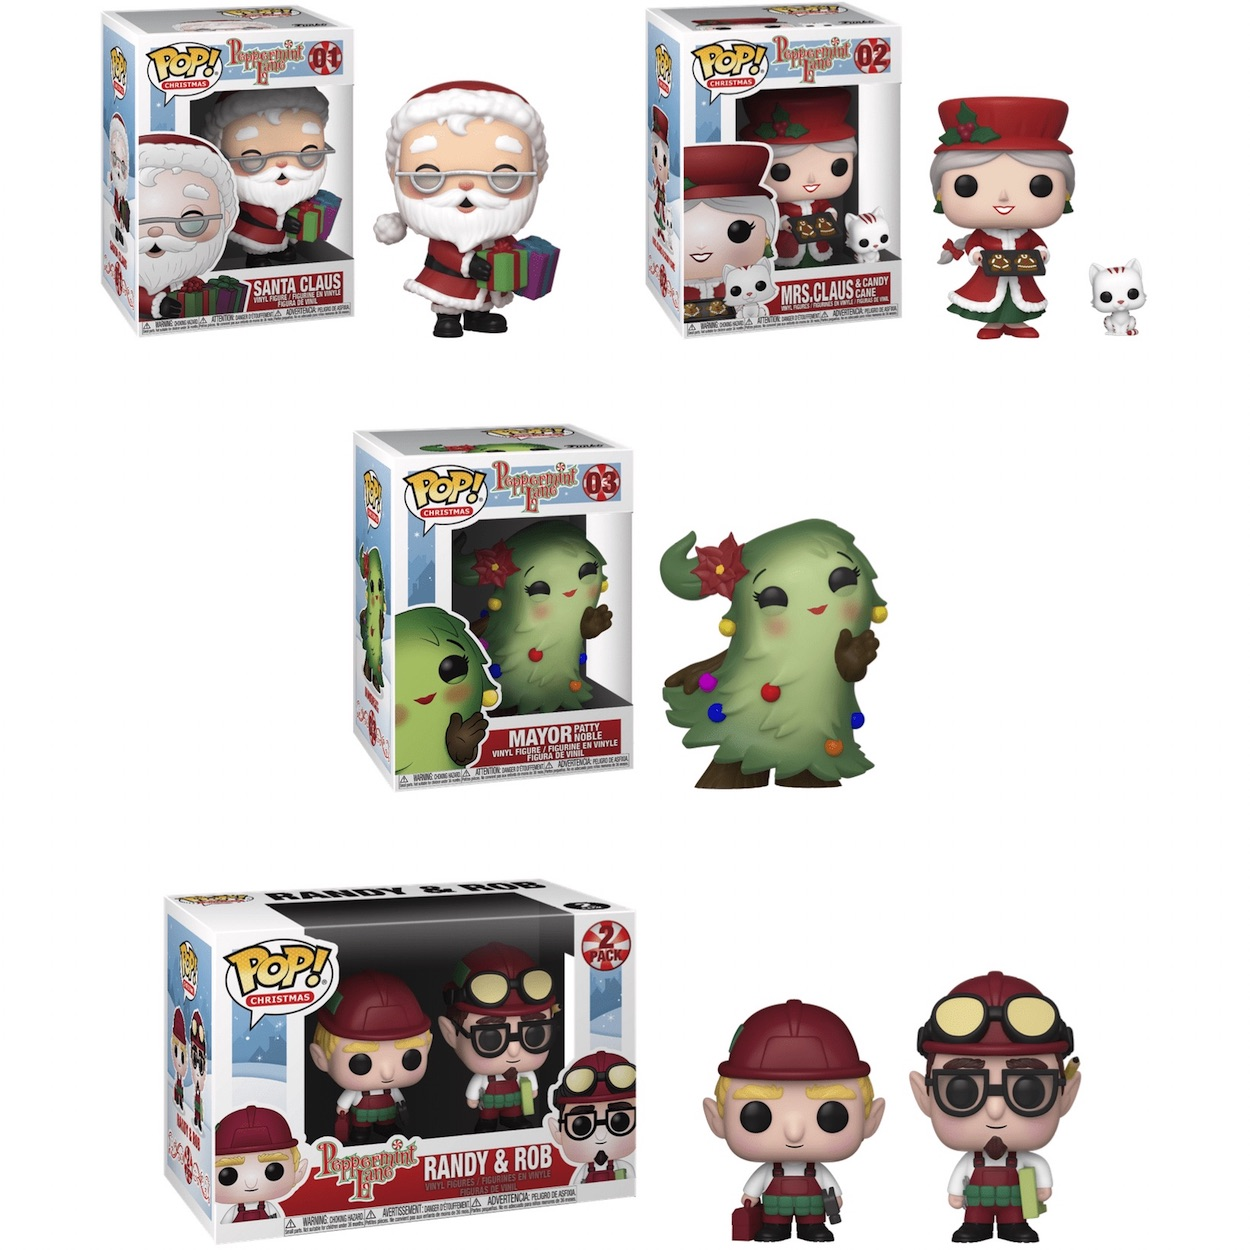 Christmas Funko Pop 2020 Funko Pop Christmas Peppermint Lane Checklist, Exclusives List